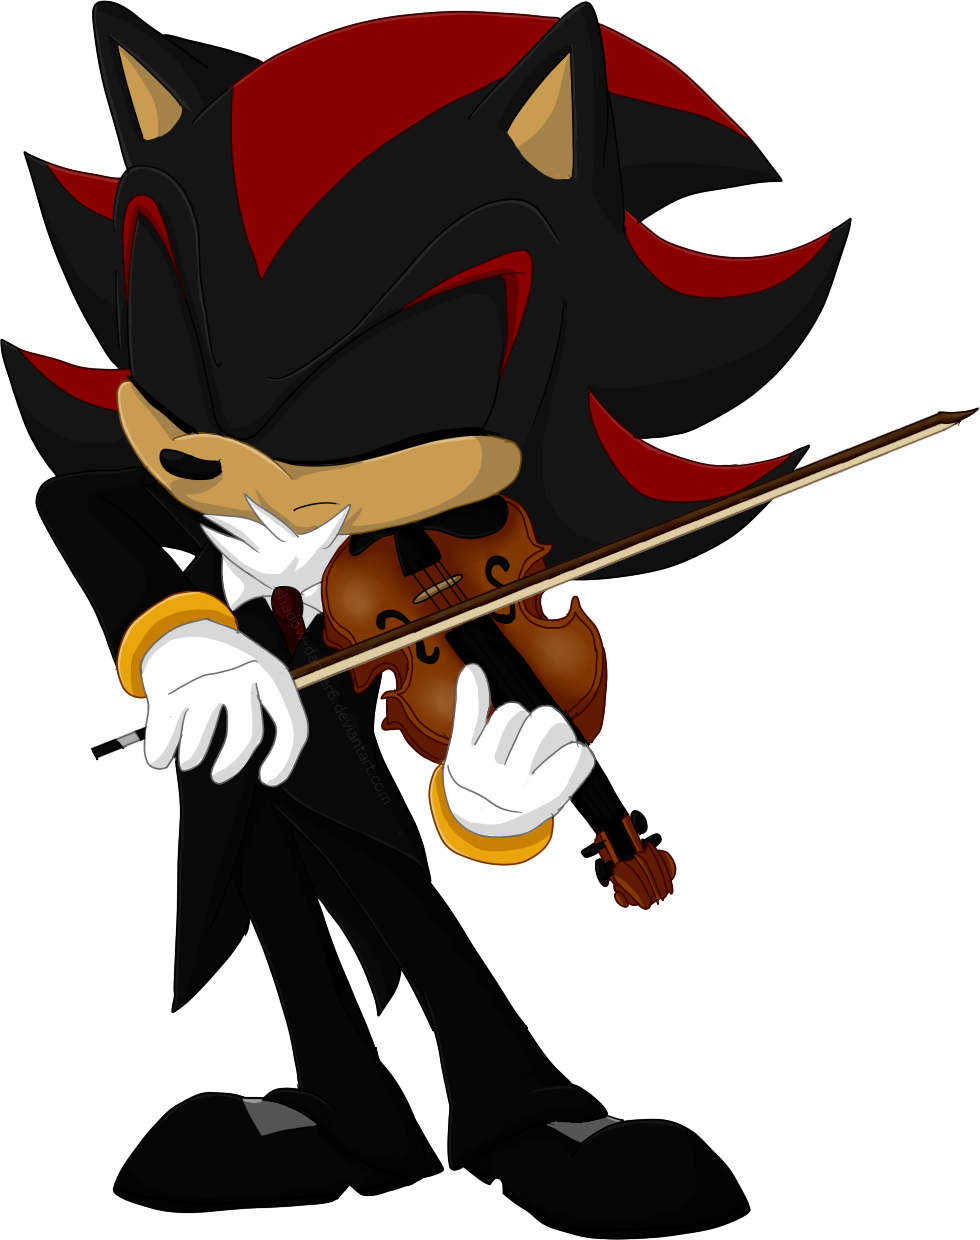 shadow_violin_by_shadow_dancer6-d8lvw8z.